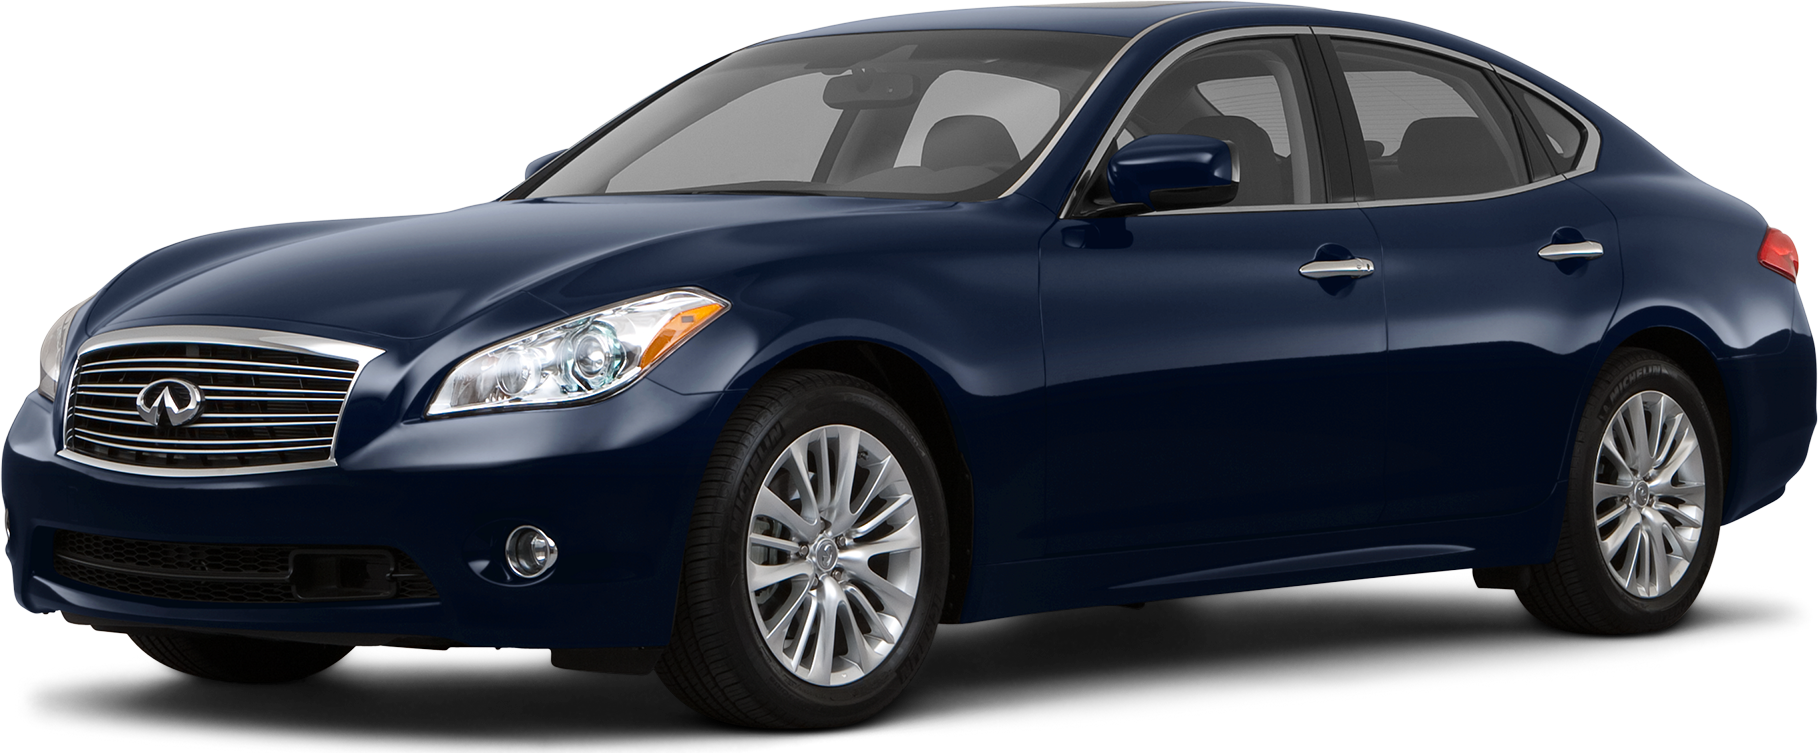 2012 Infiniti G Values Cars For Sale Kelley Blue Book